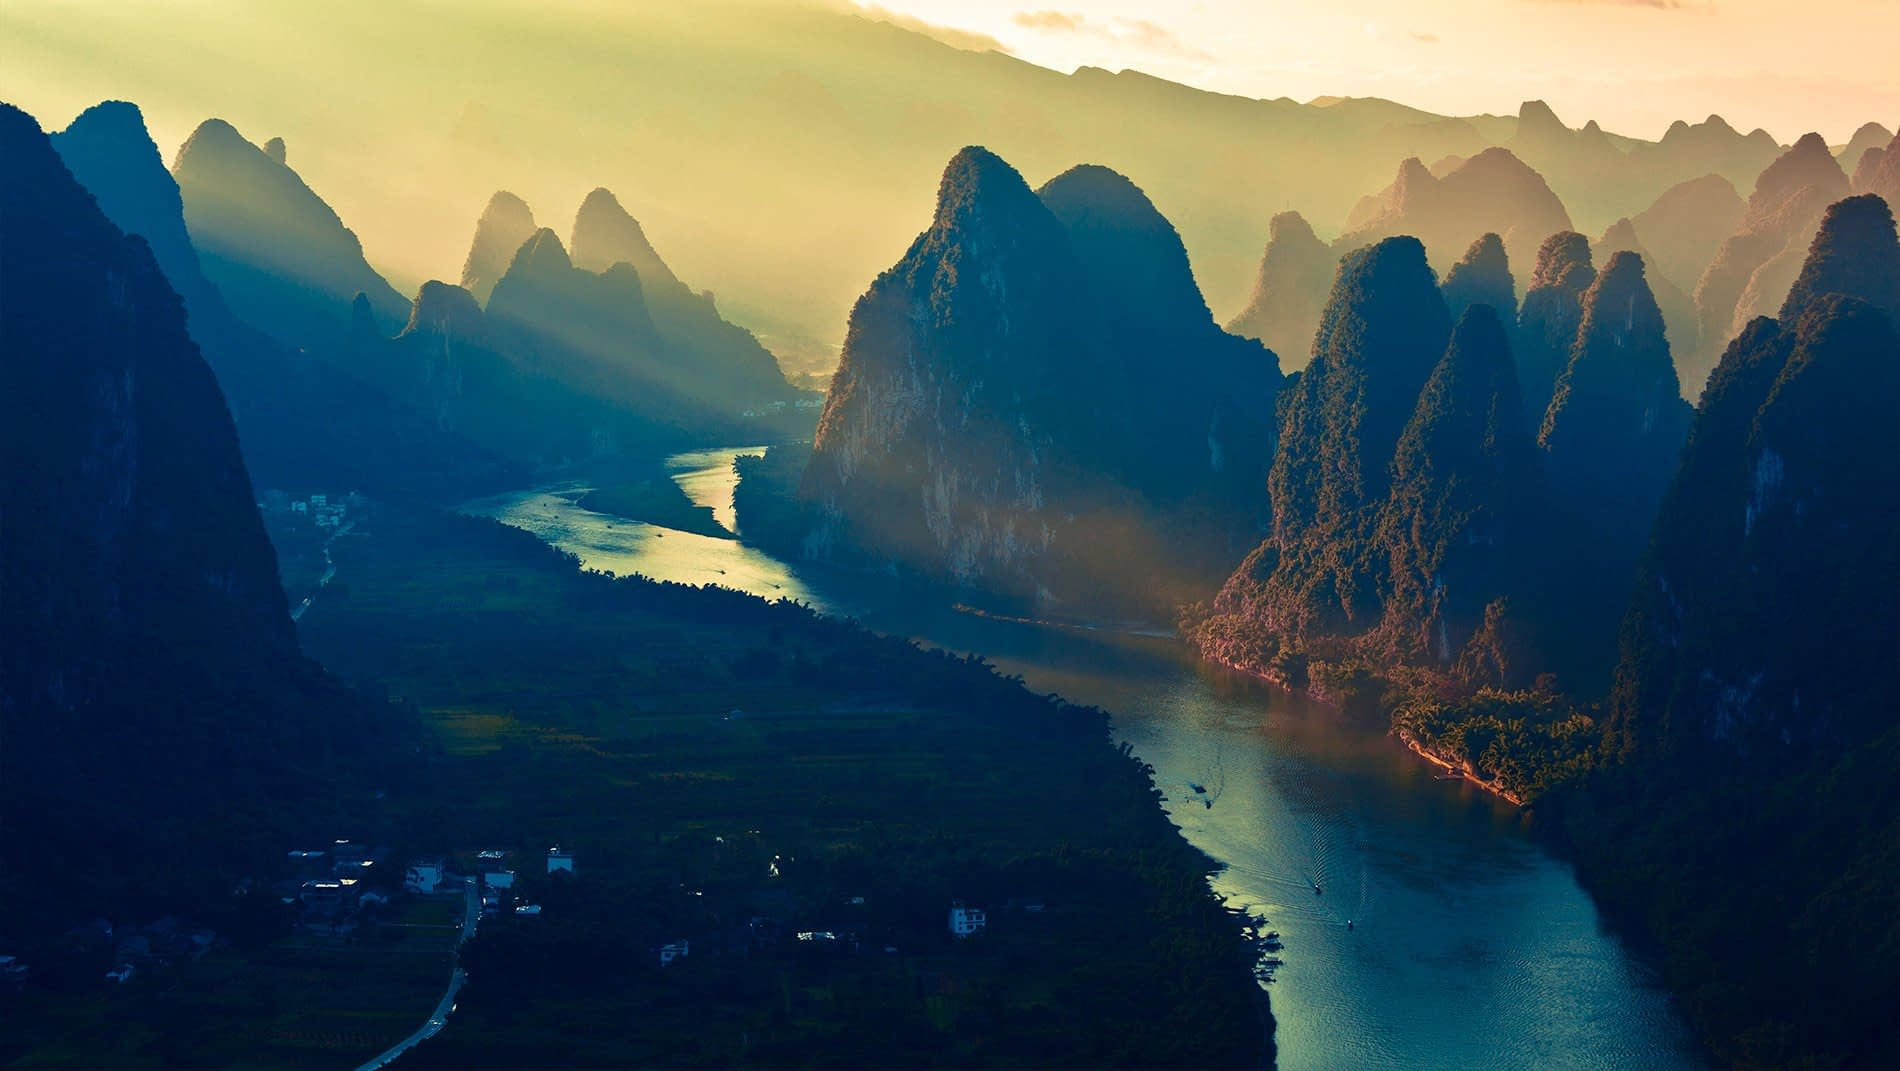 Karst Mountains~The erosion of a massive limestone block over tens of millions of years has left a phantasmagorical landscape of vegetation-encrusted towers and cones sowed together by a meandering river irrigating bountiful fields of fruit, rice and vegetables.